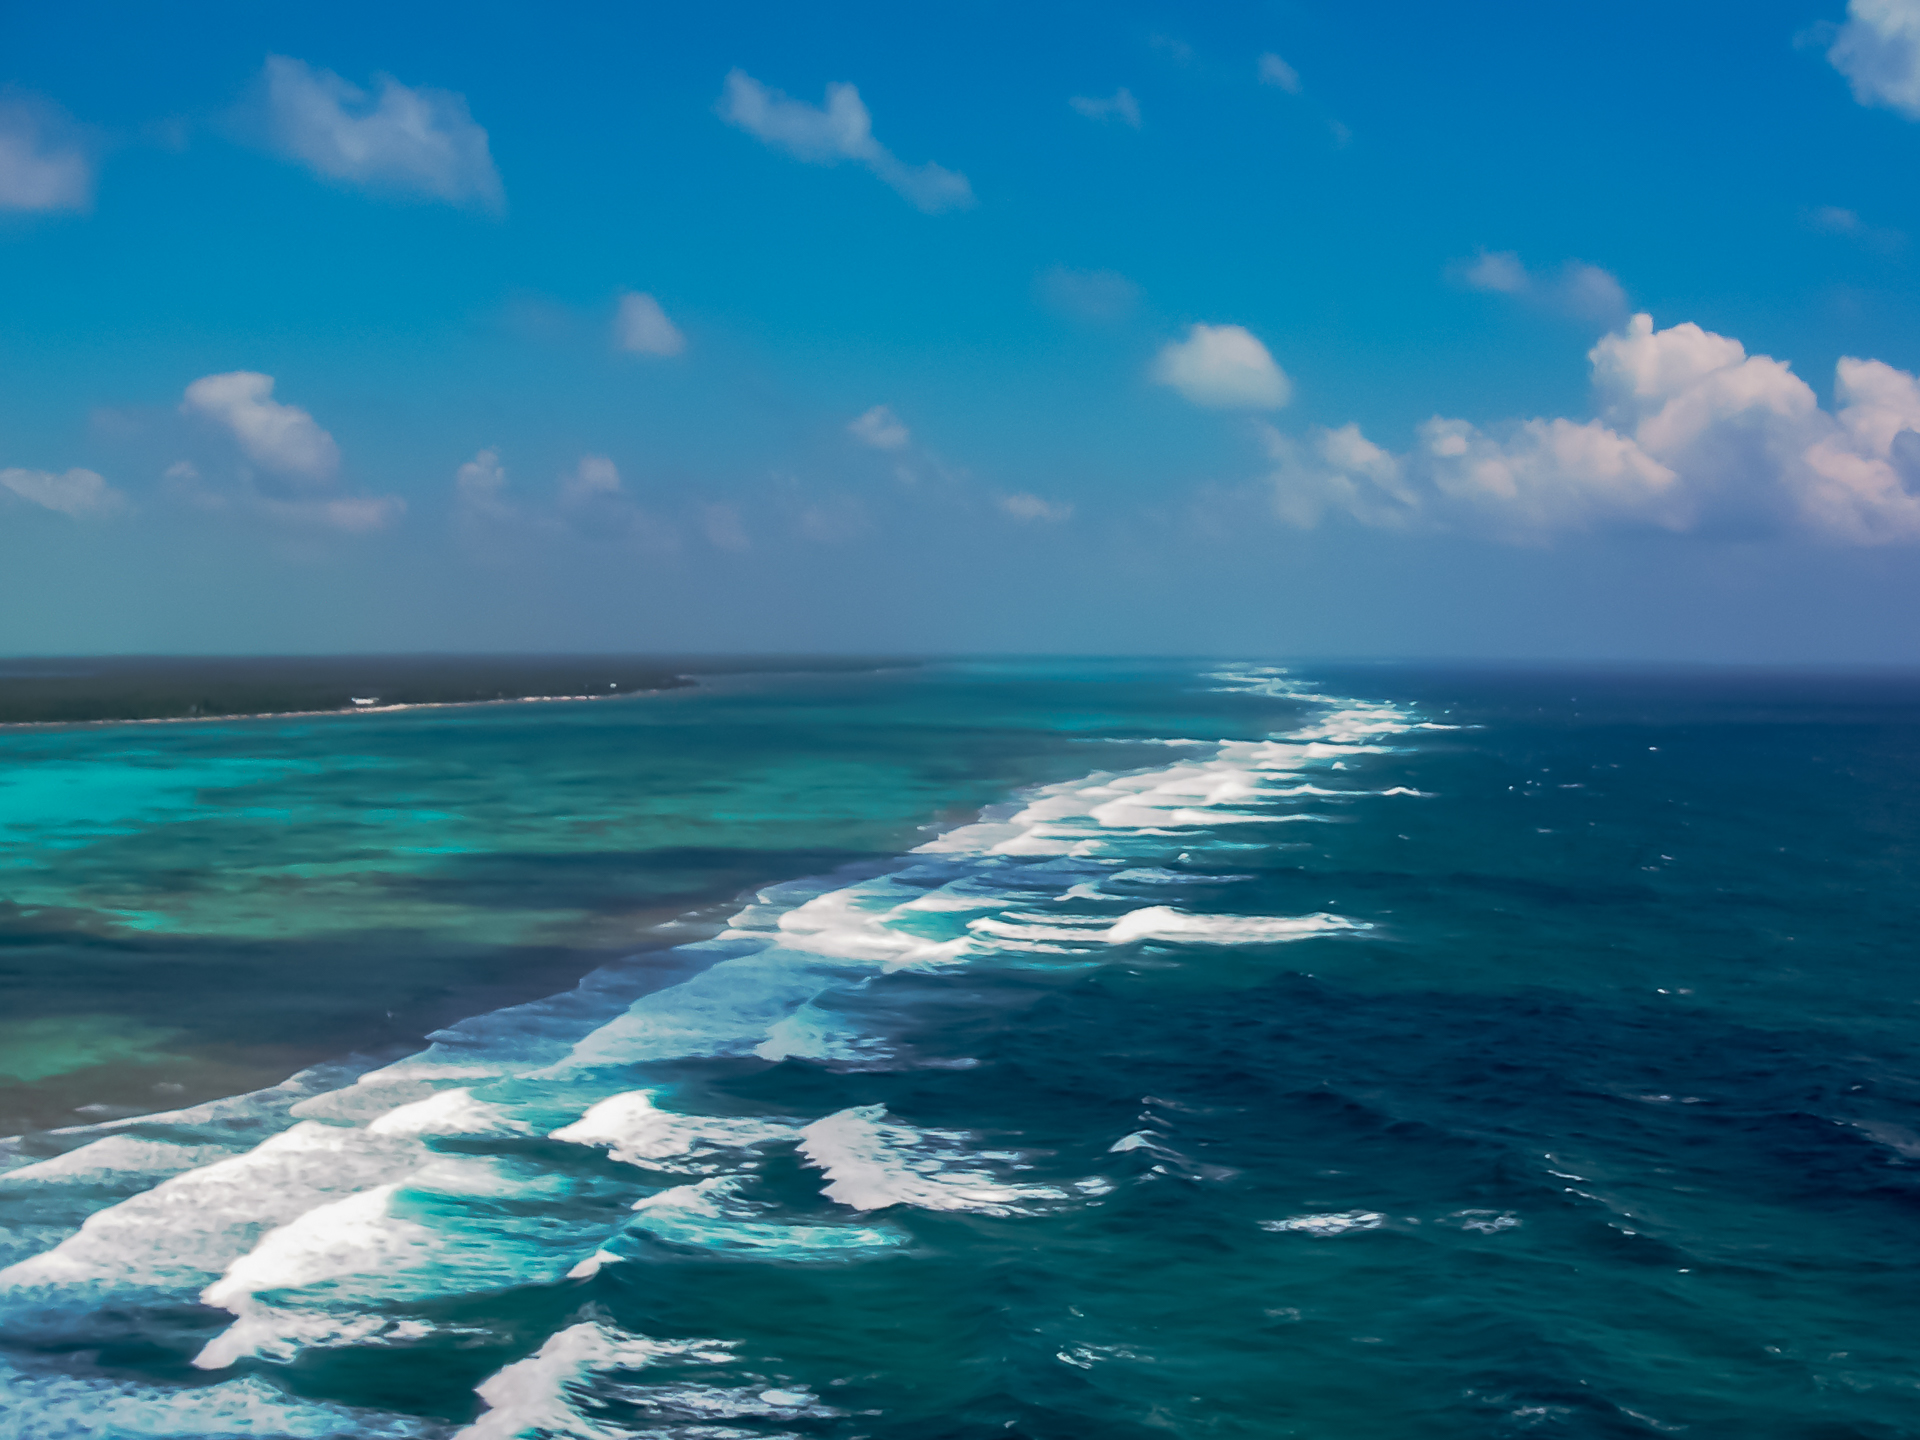 Belize Barrier Reef: the second largest barrier reef in the world.